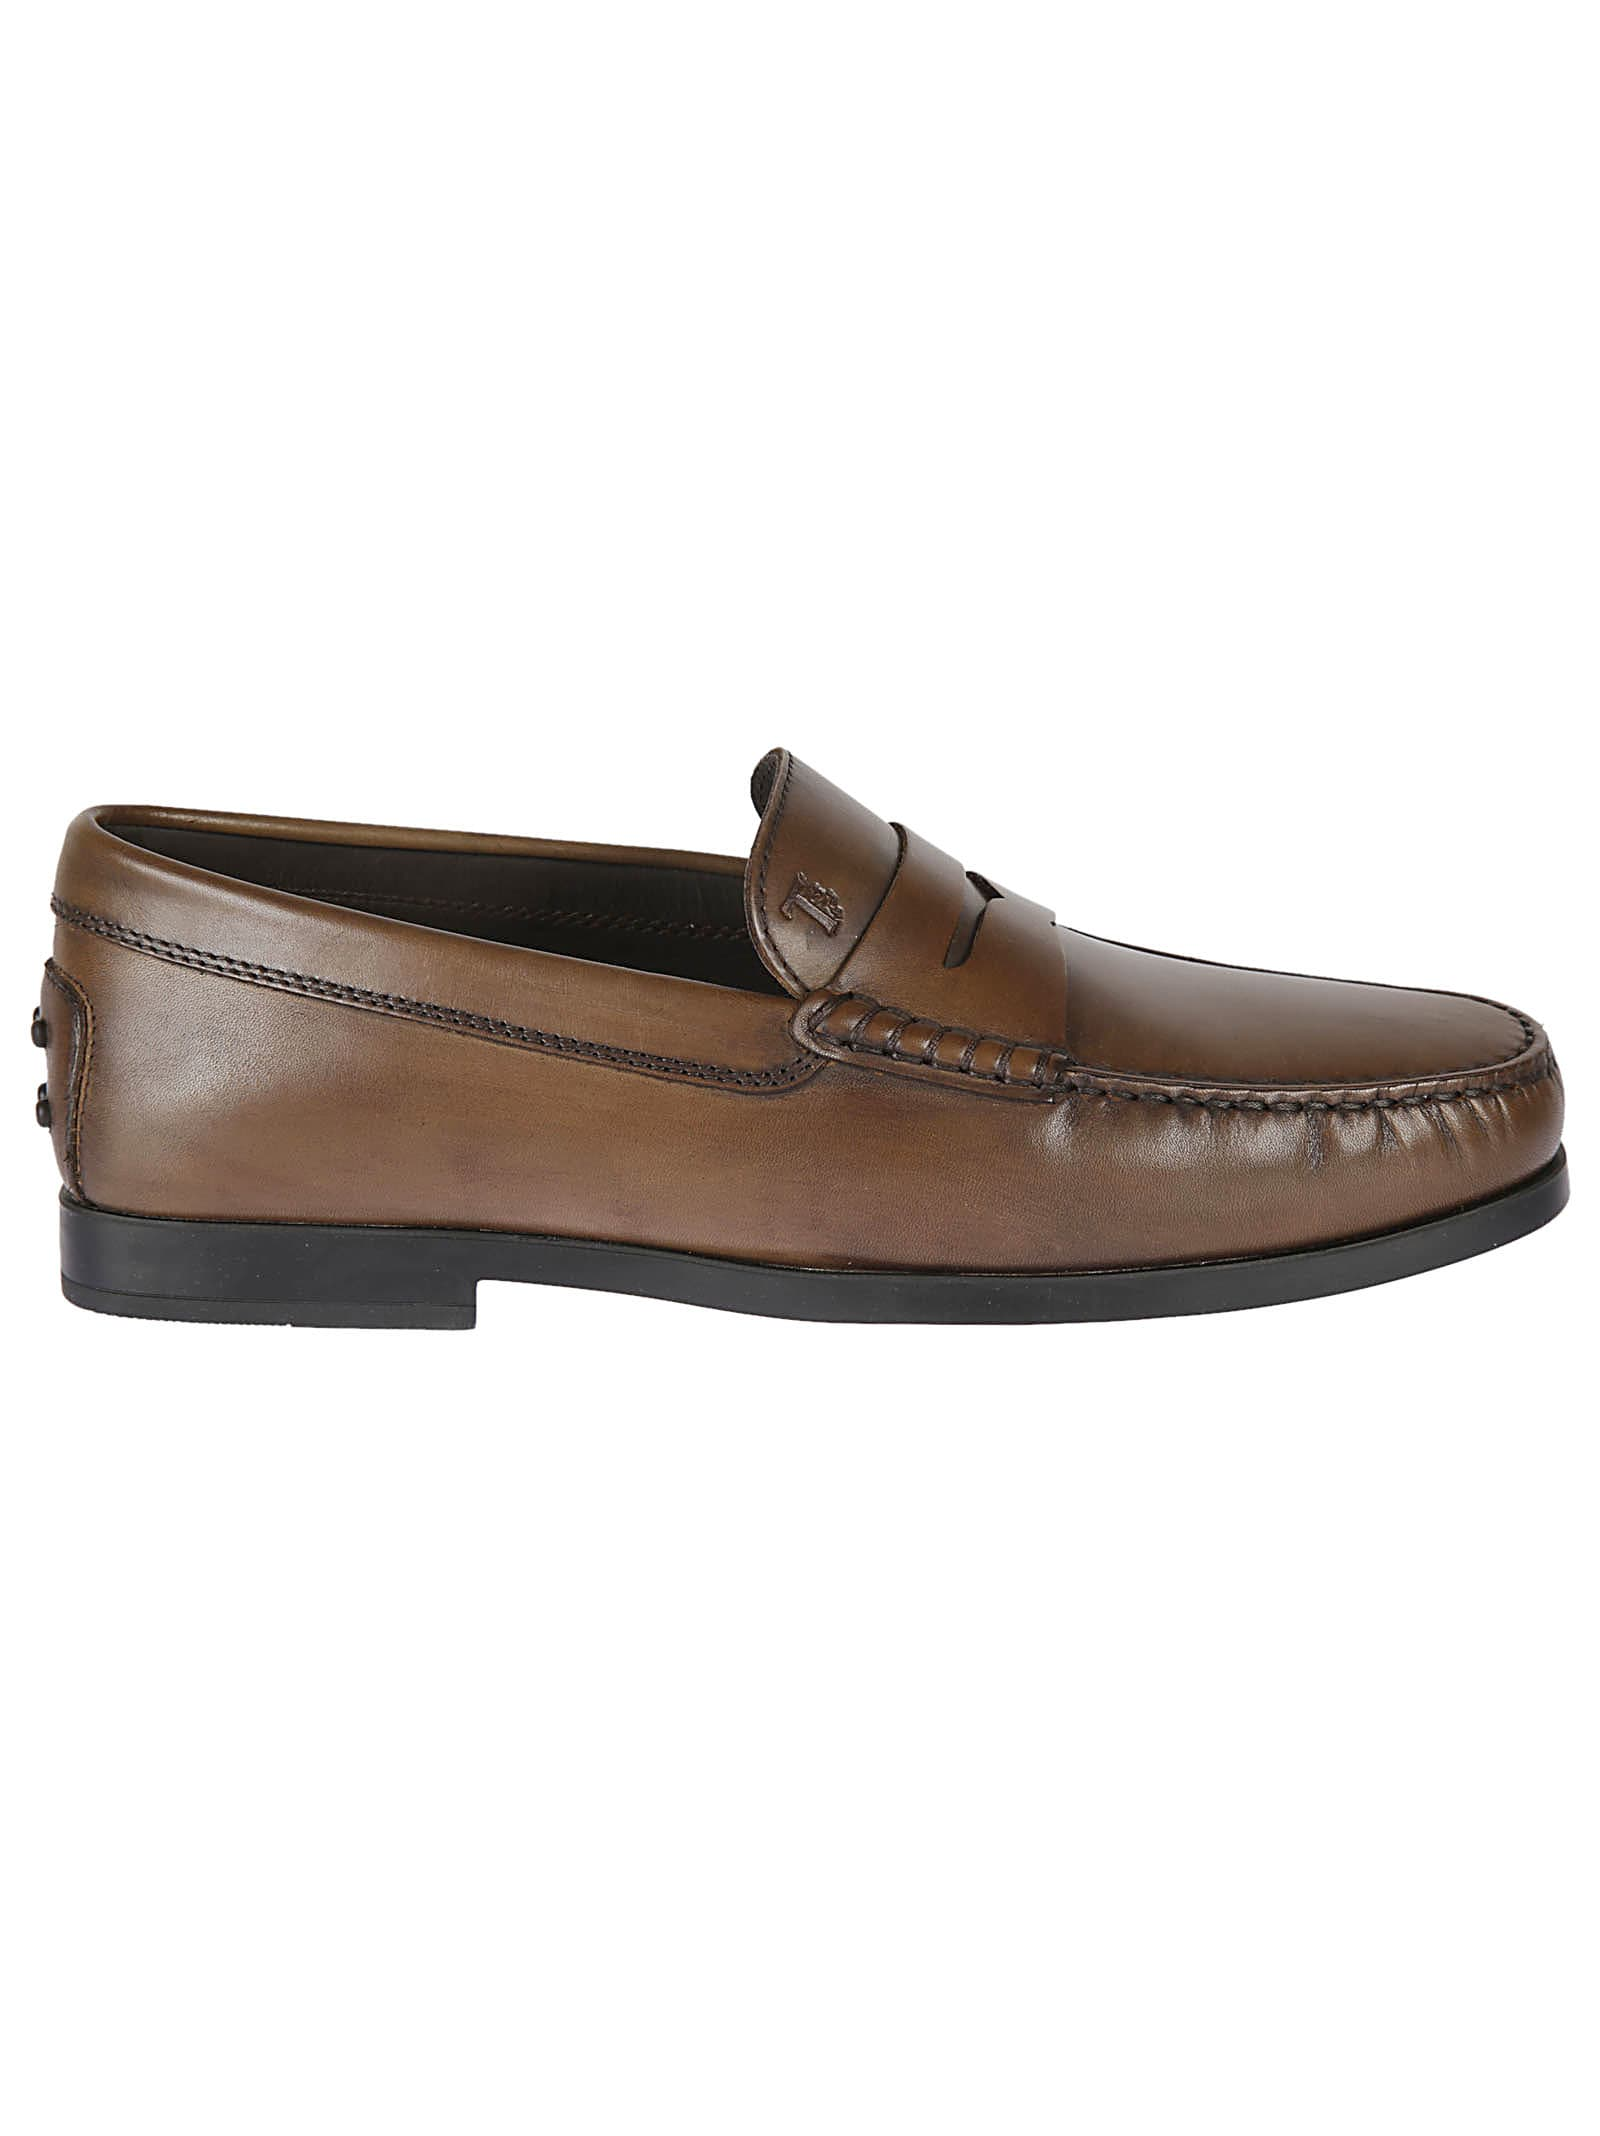 Tods Embossed Logo Loafers